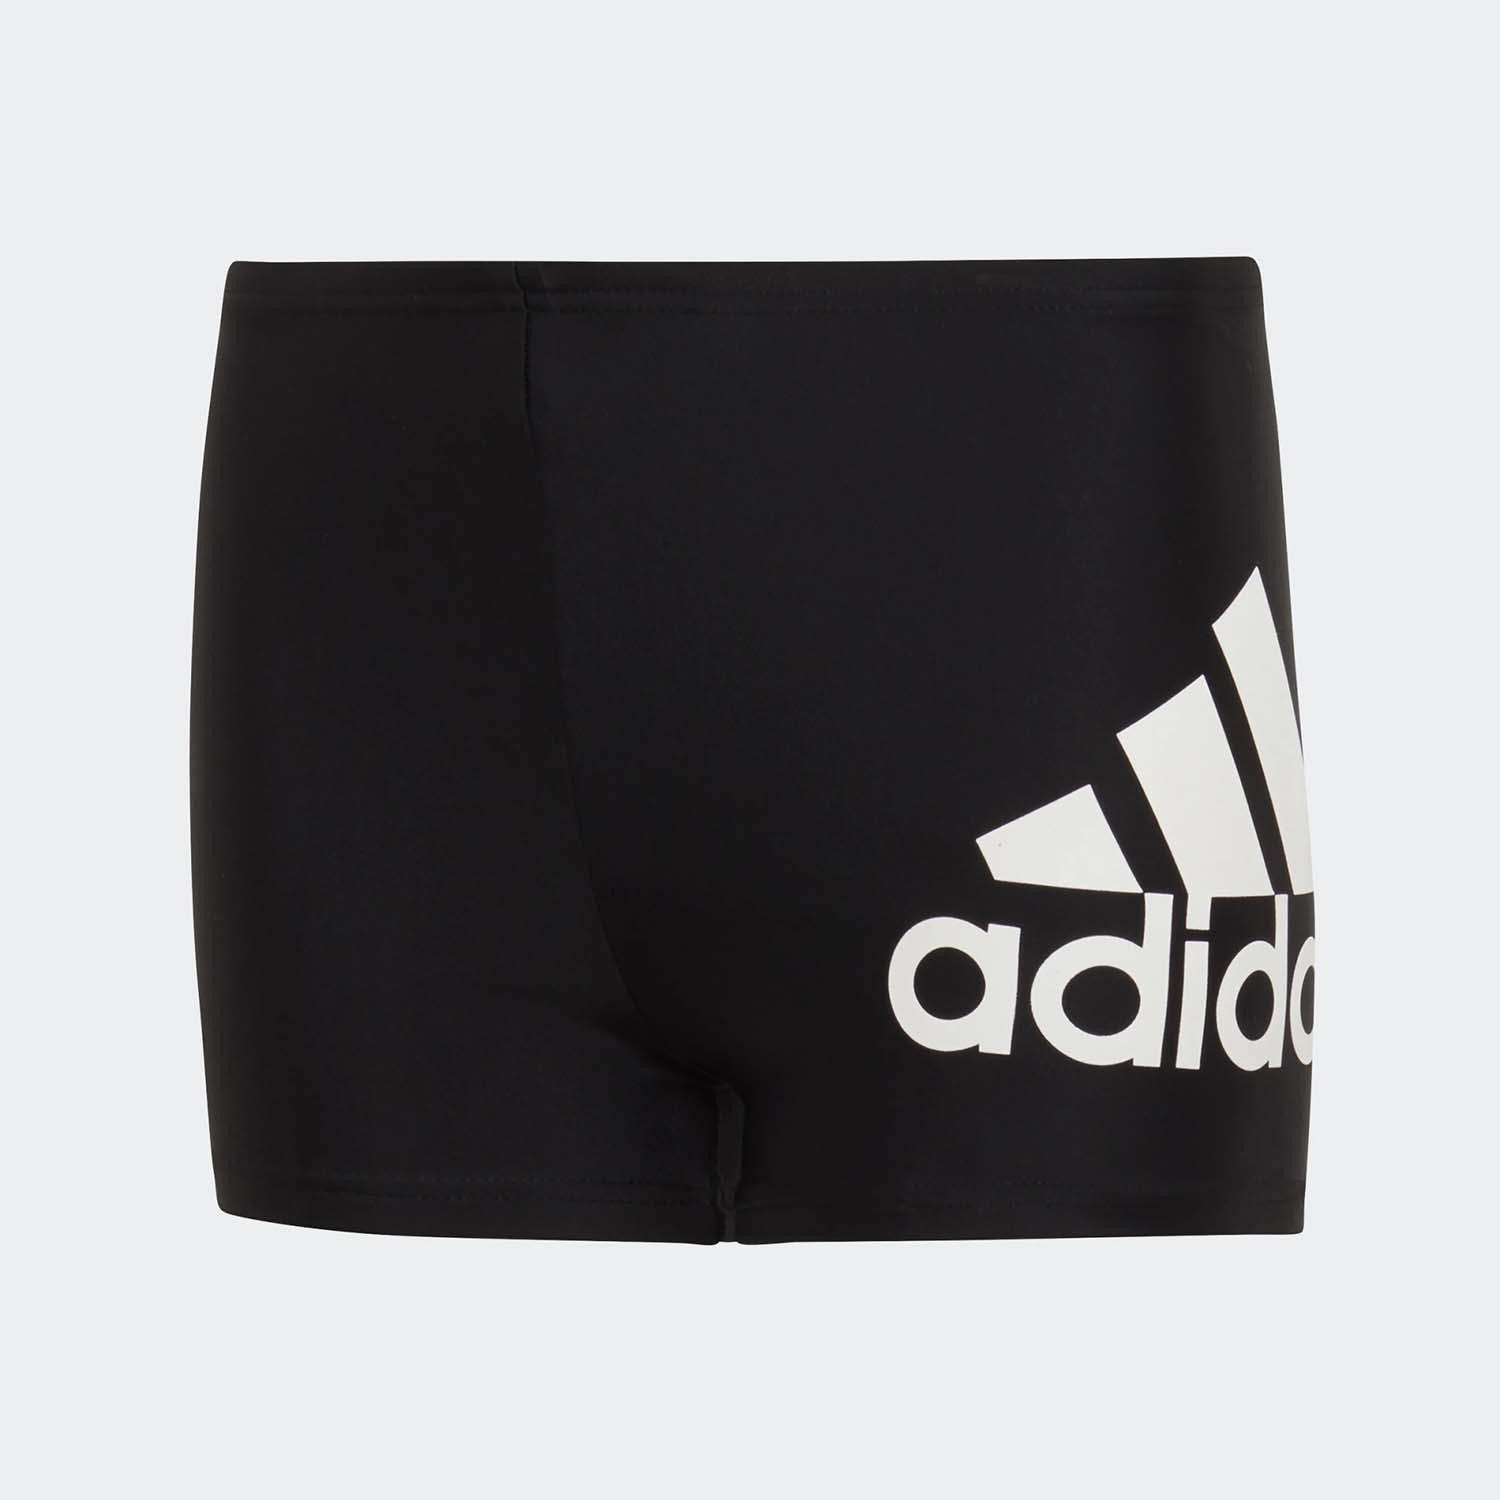 adidas Badge Of Sport Men's Swim Boxers - Ανδρικό Μαγιό (9000023425_1469)